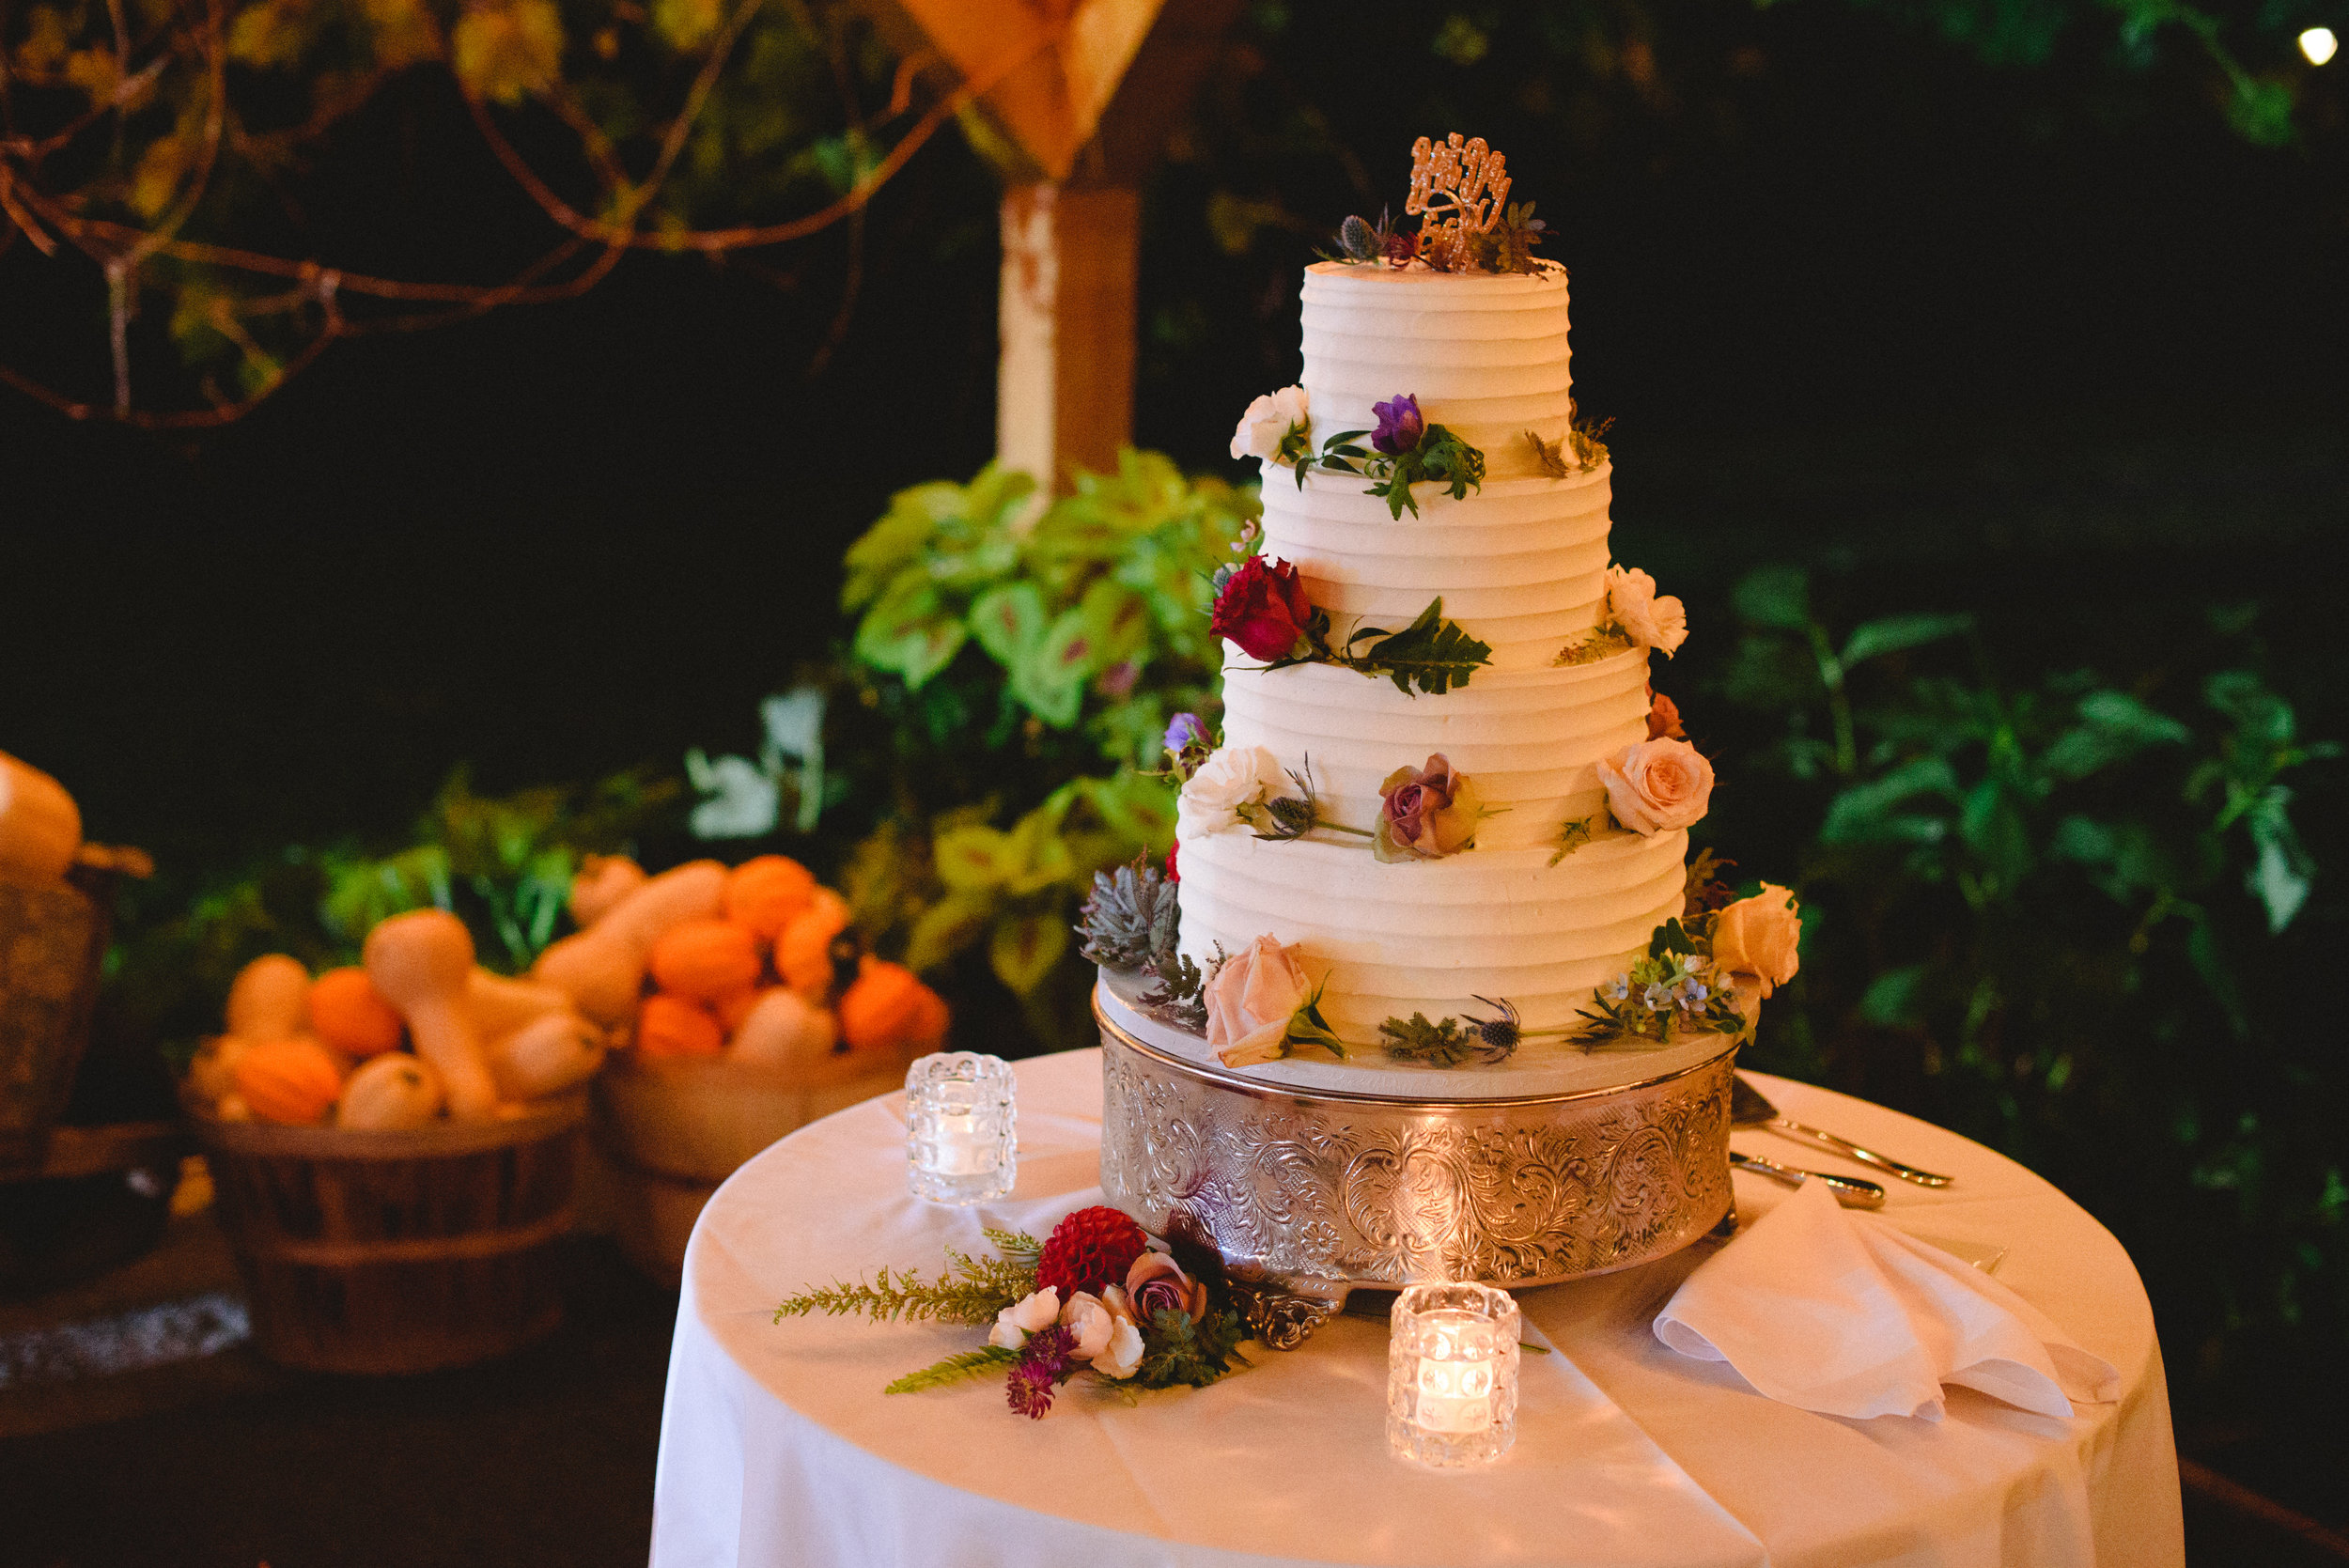 simple. vibrant. elegant white wedding cake with bright flowers